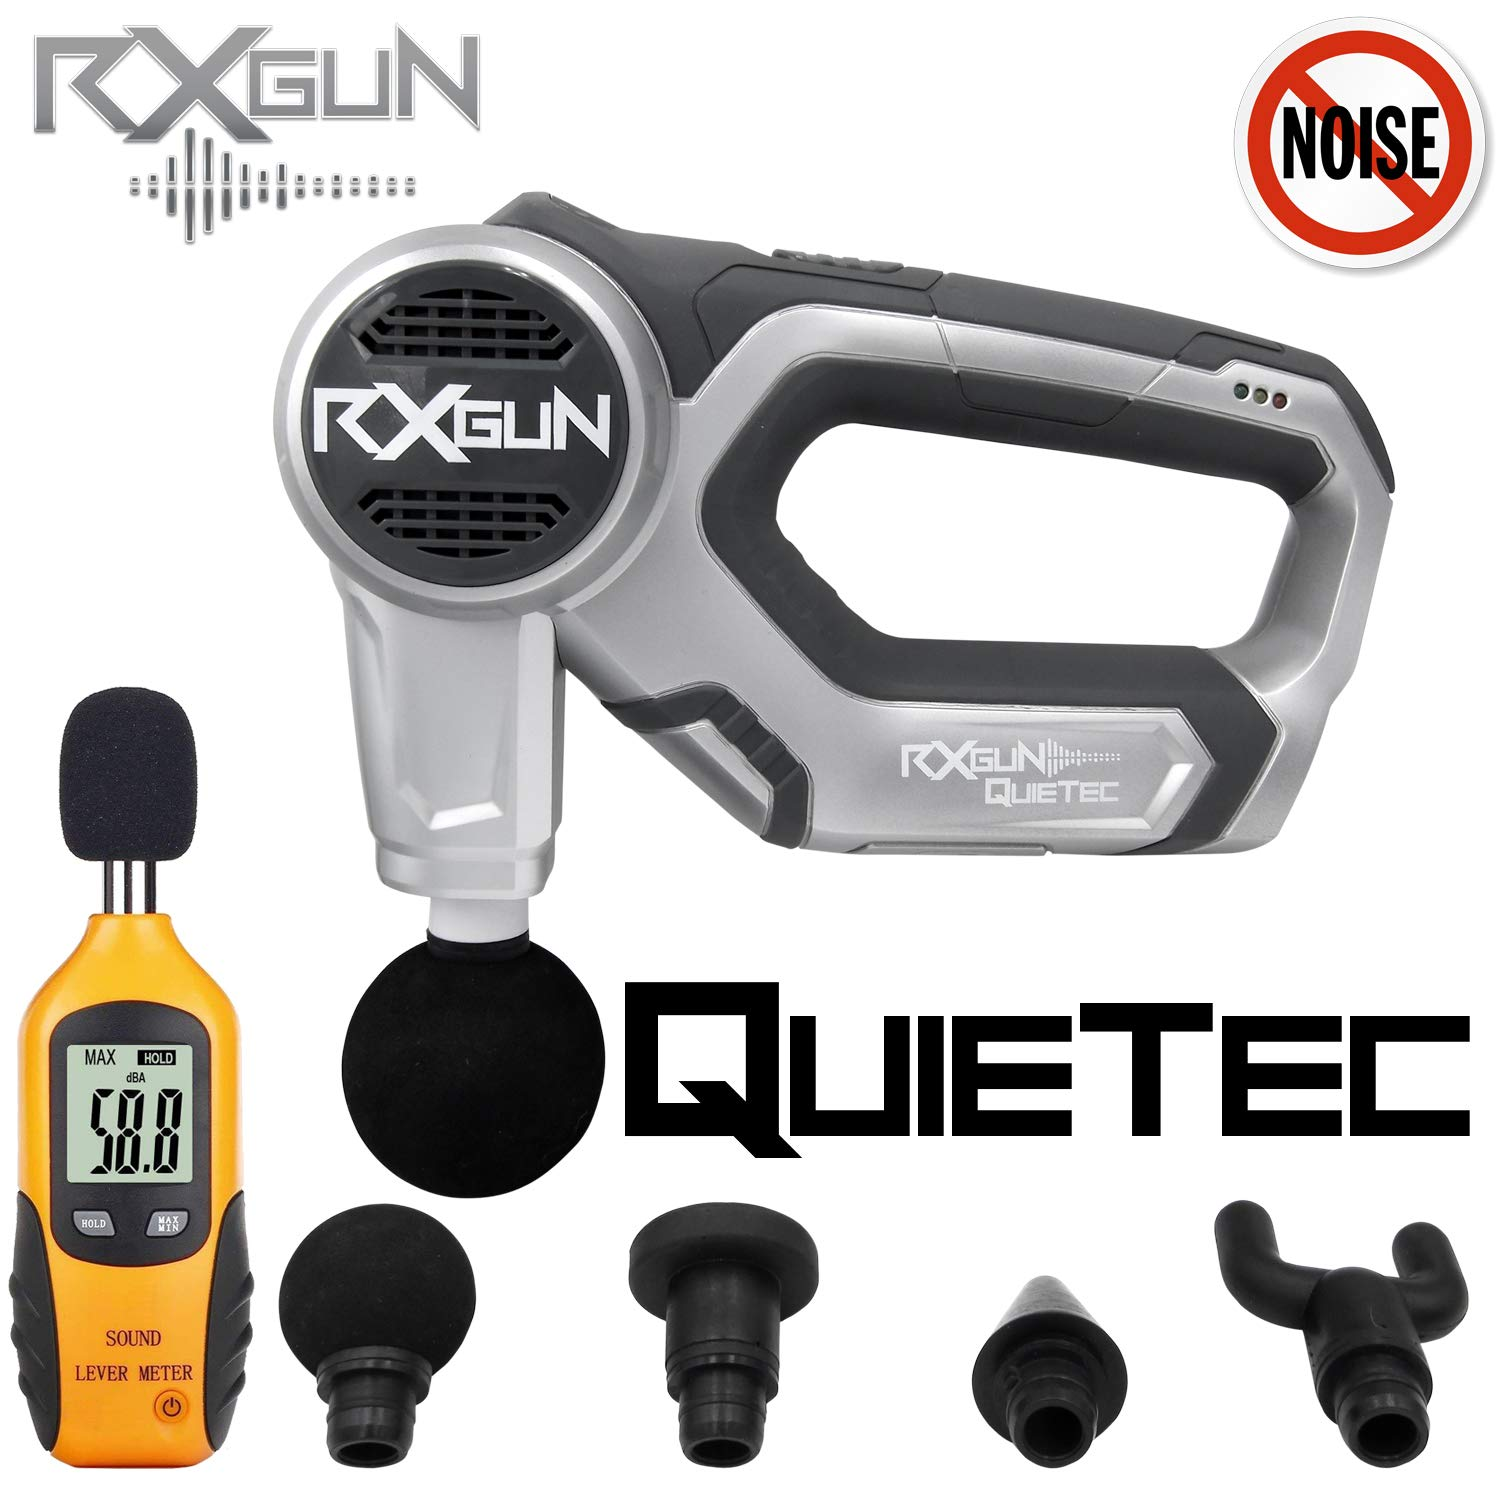 RxGun QUIETec Vibration Percussion Massager Cordless Rechargeable Handheld Percussive Muscle Stimulation Device Deep Tissue Muscles, Recovery Pain Relief Professional Quiet Whisper Massage Gun